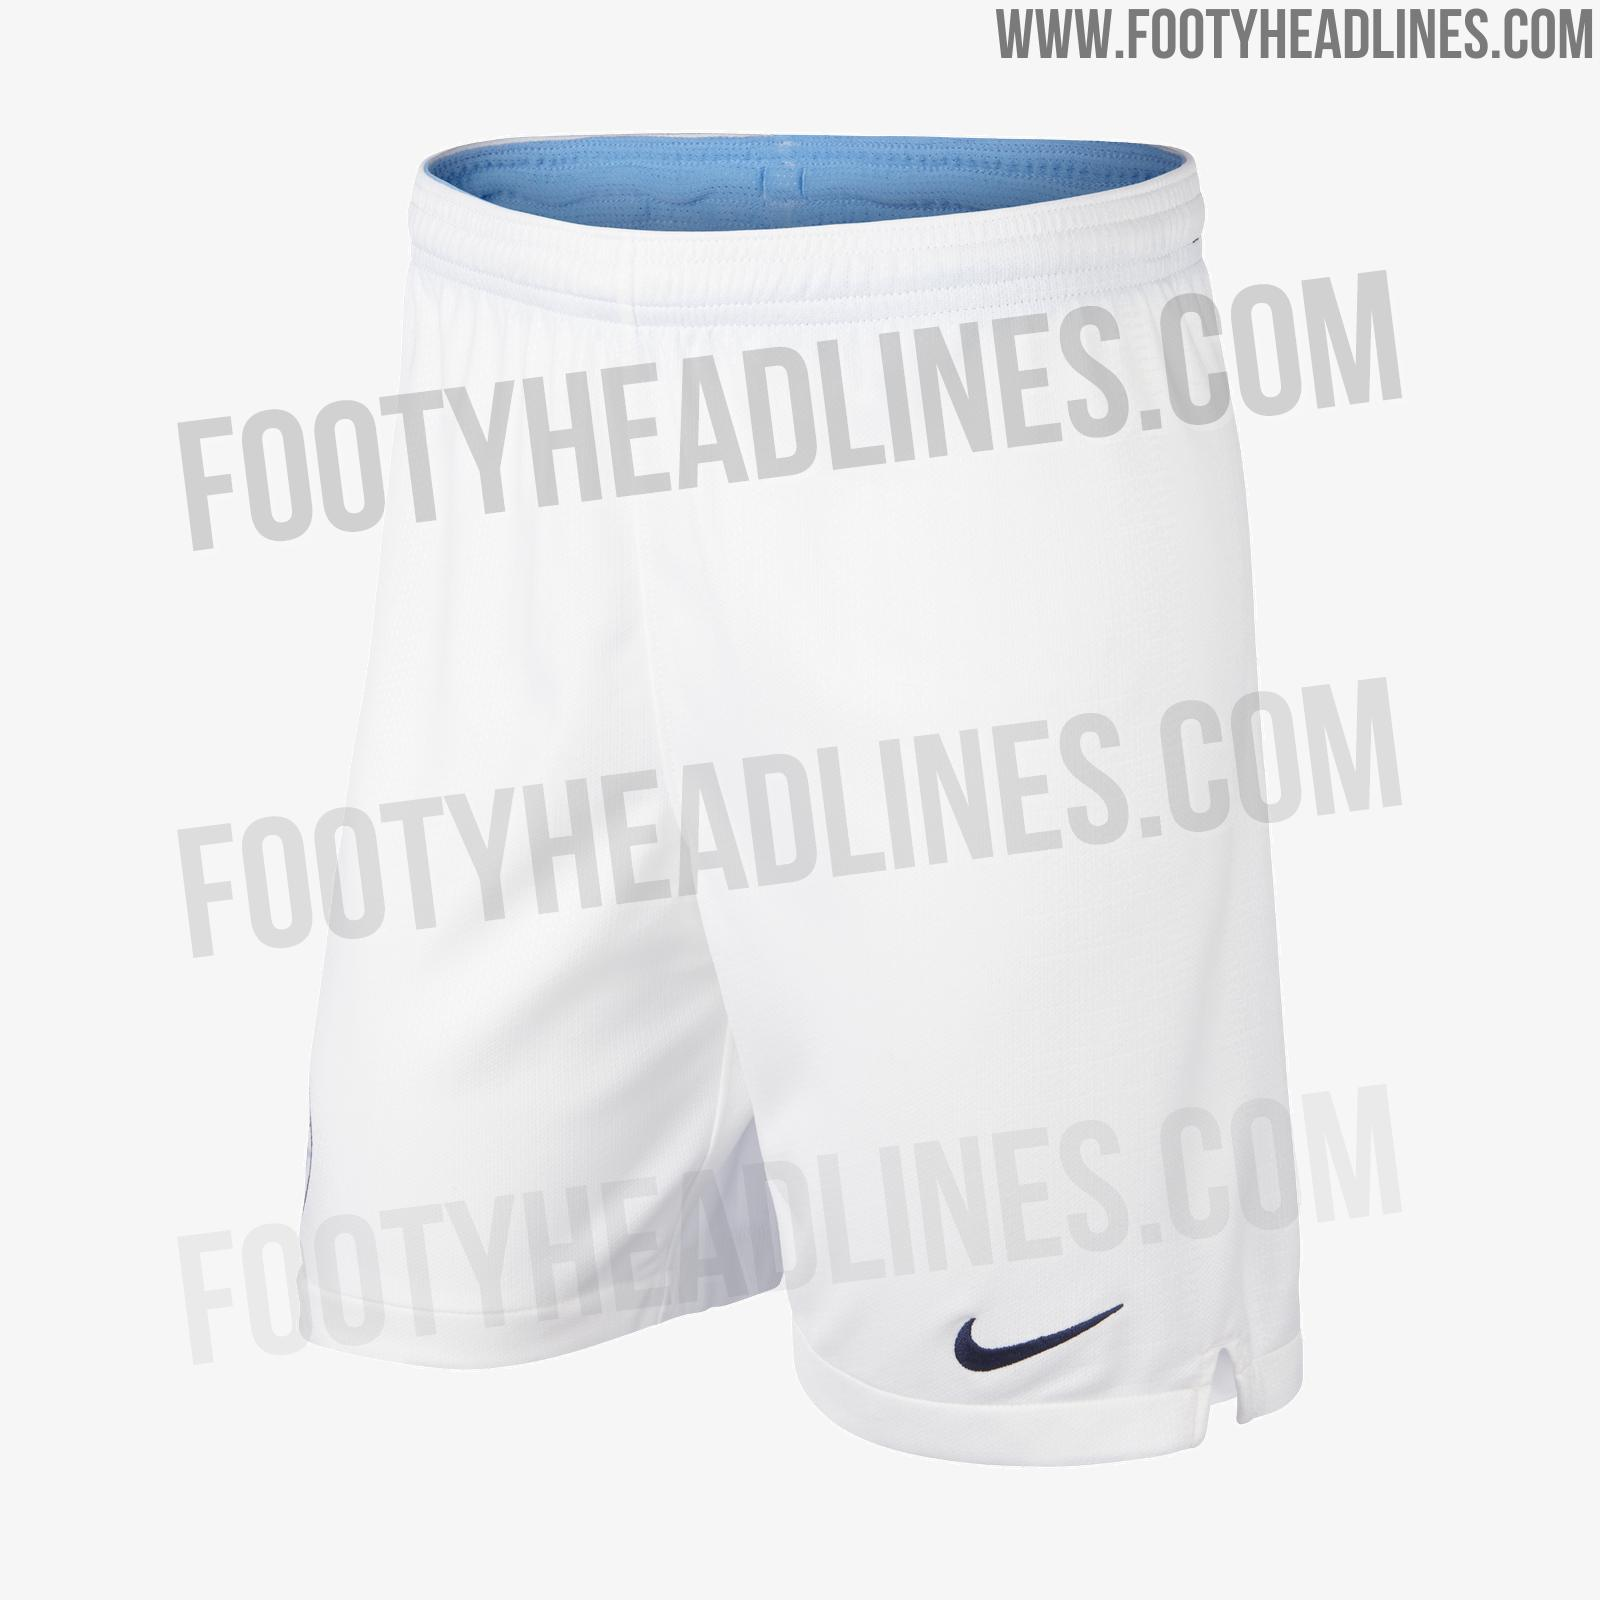 manchester-city-18-19-home-kit-9.jpg